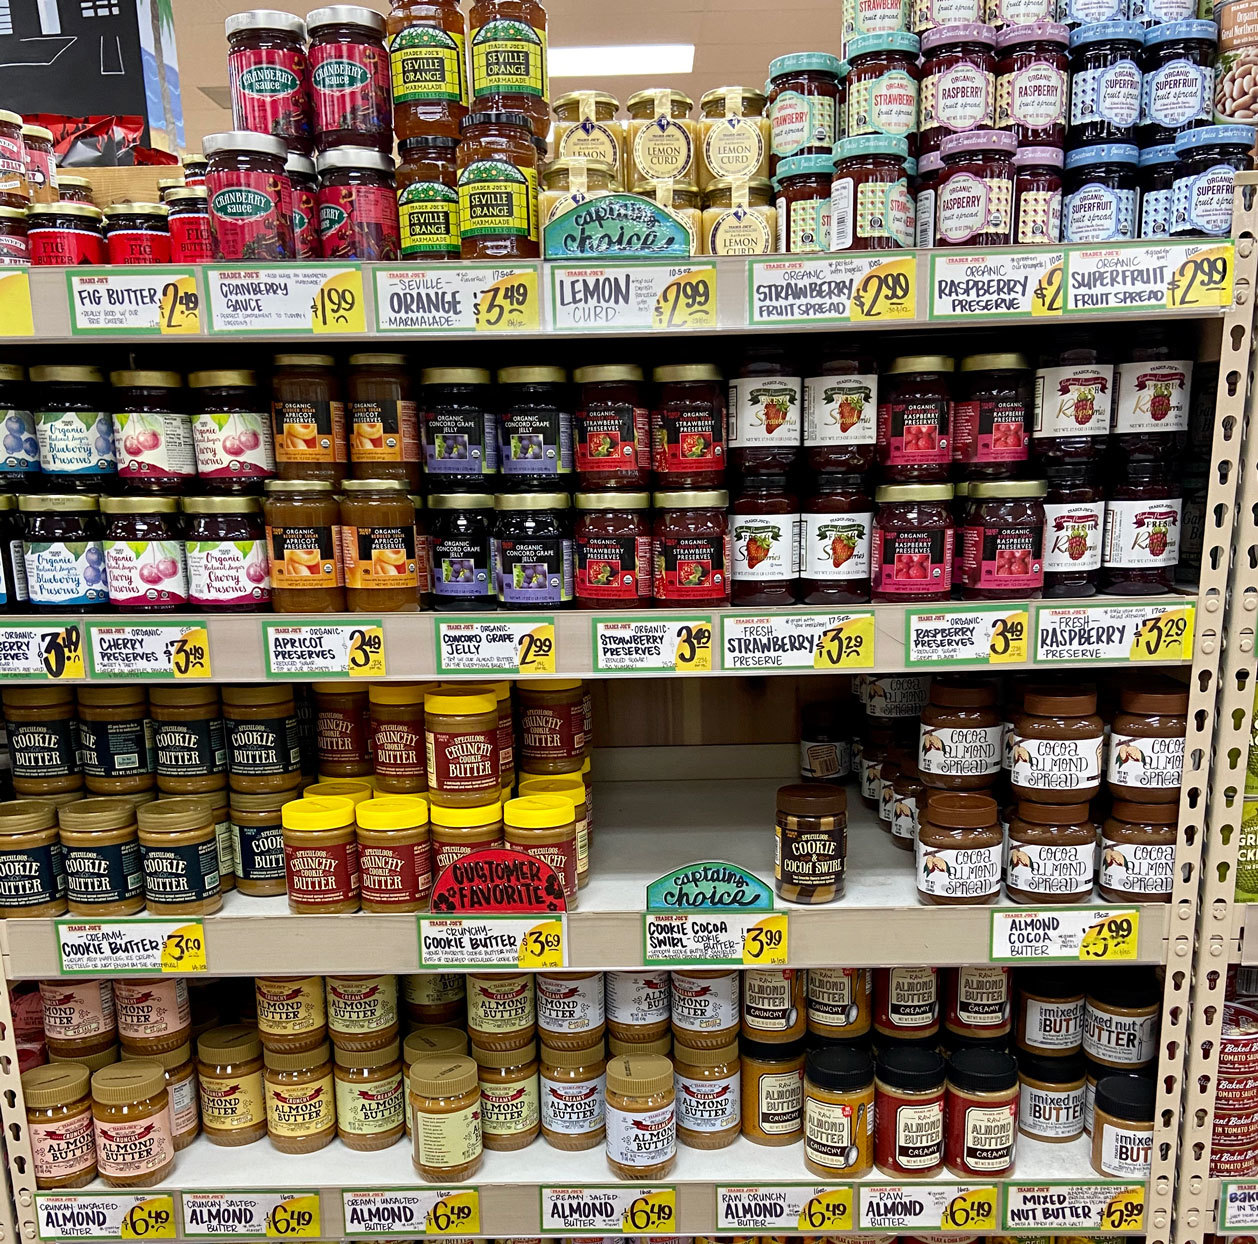 Various Trader Joe's non-perishable foods